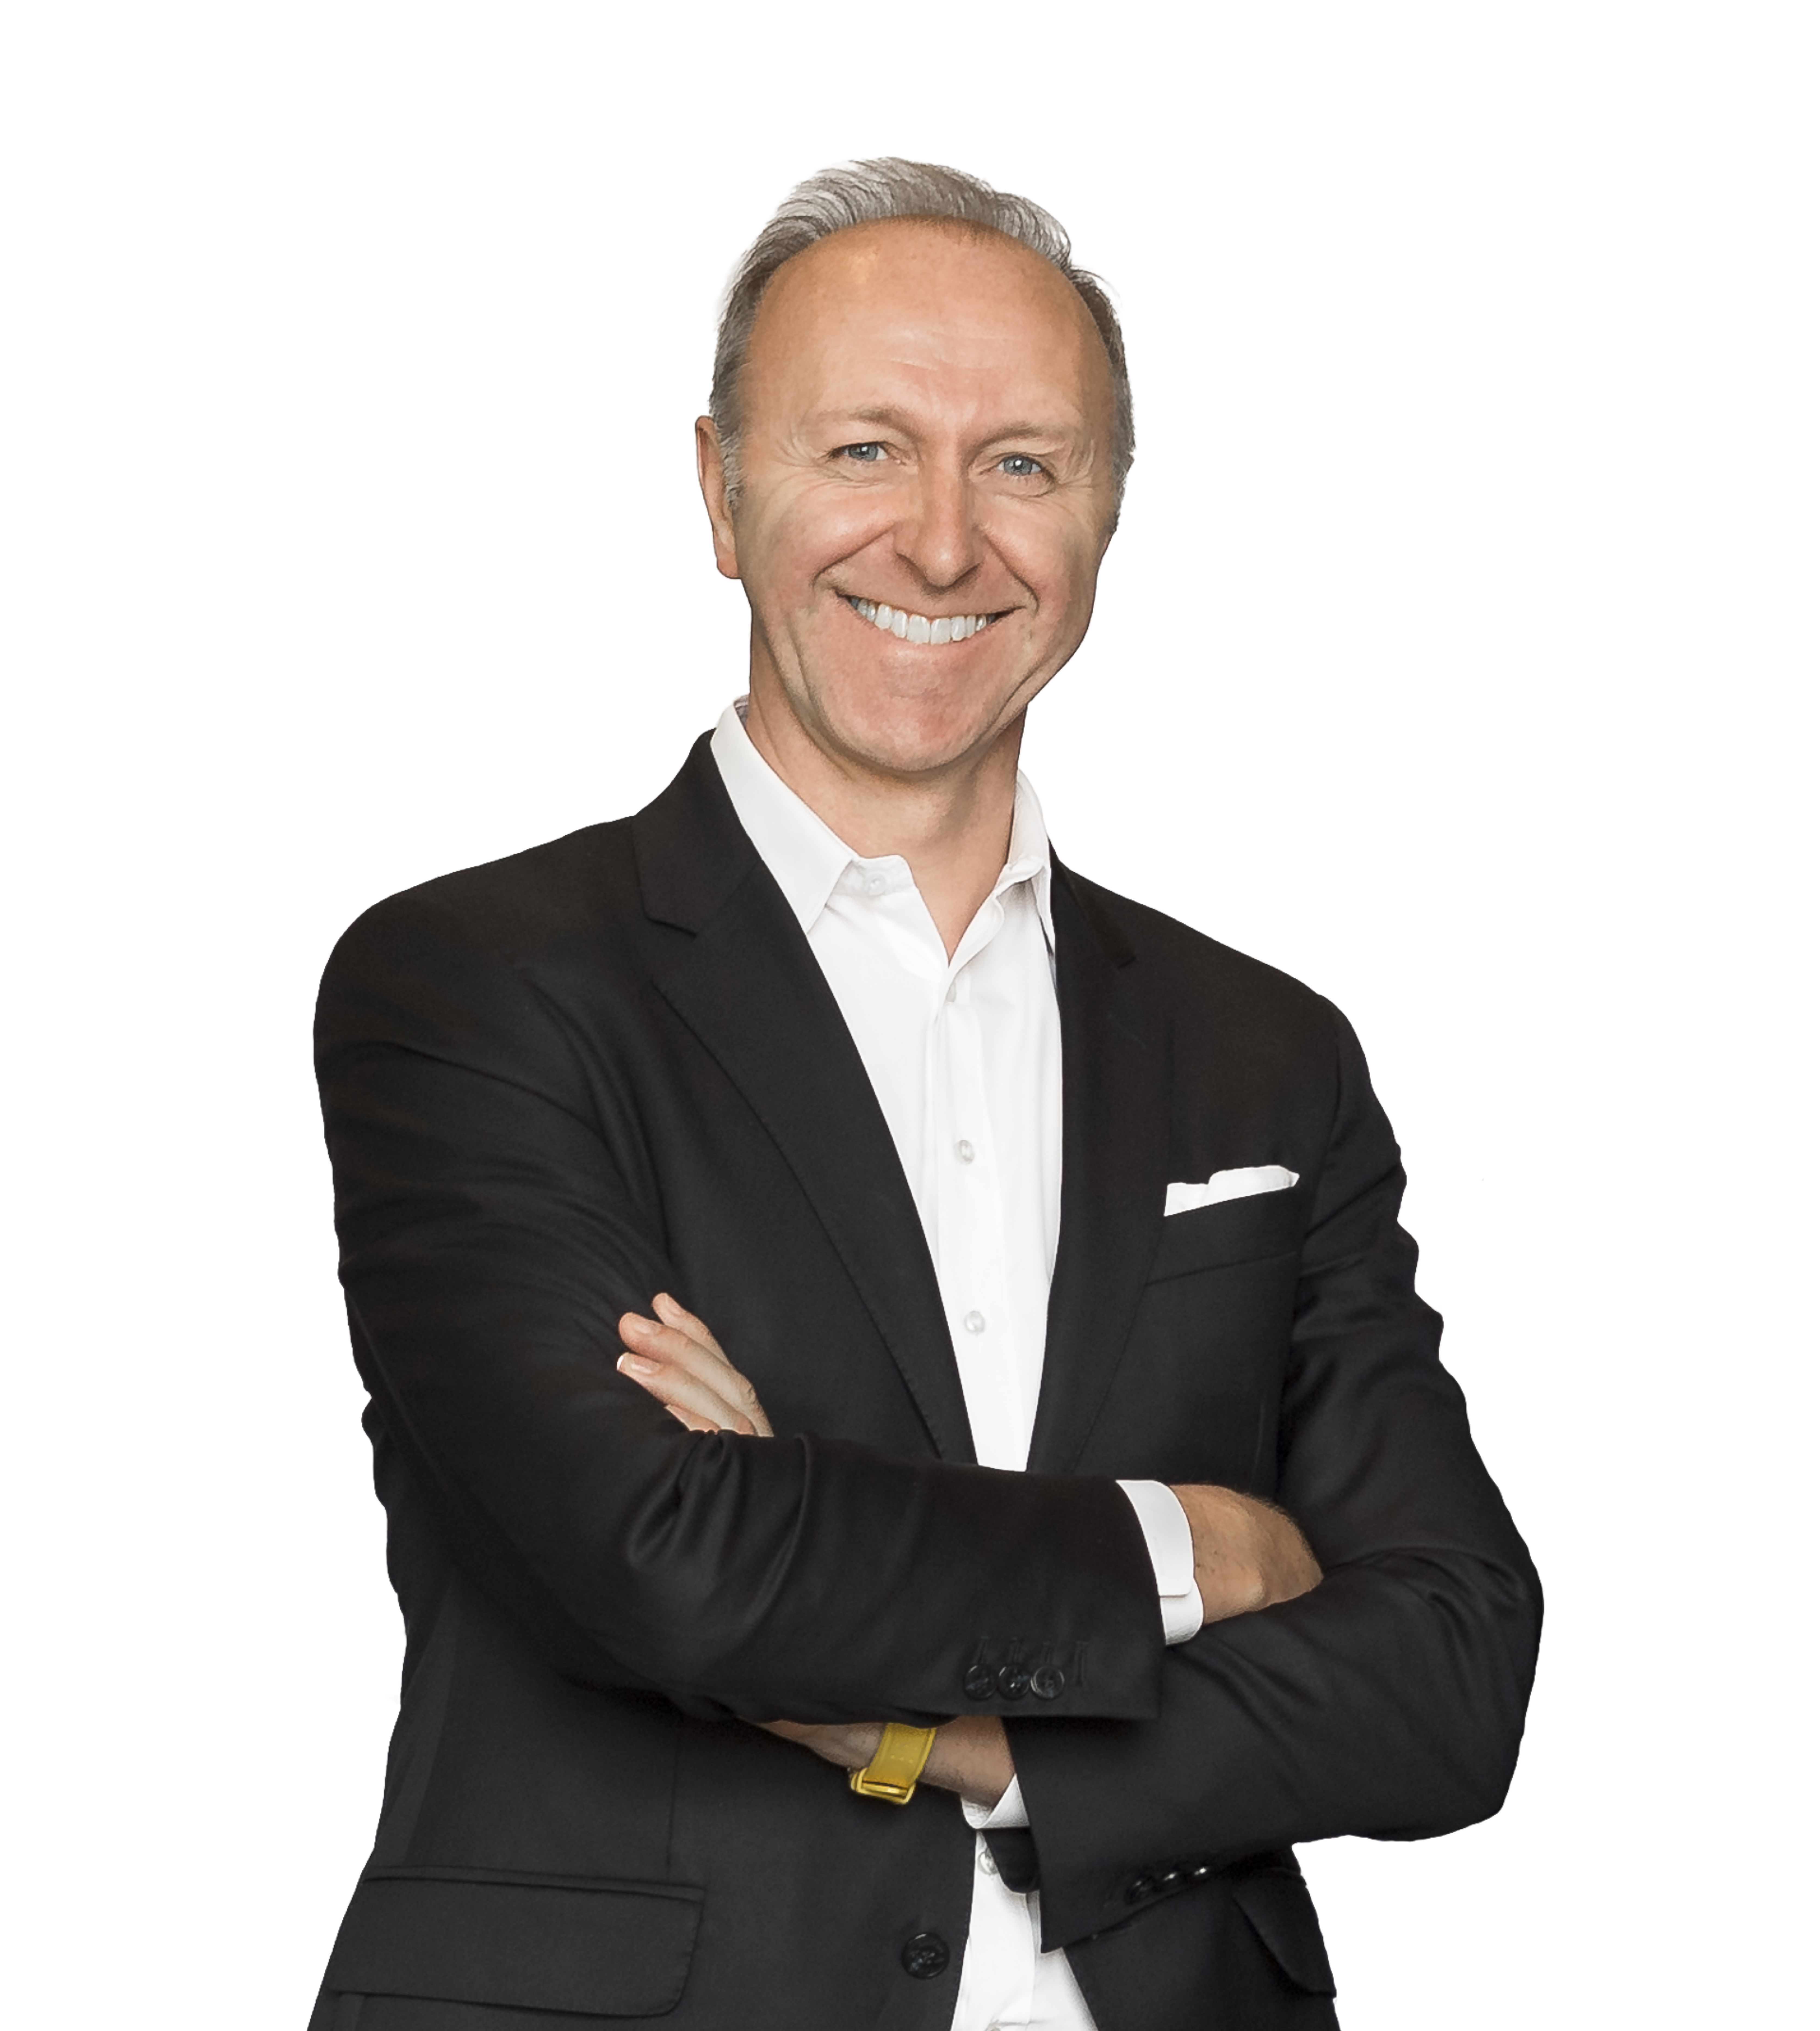 Interview de Philippe Bonningue – ‎Global Director of Sustainable Packaging & Development chez L'ORÉAL